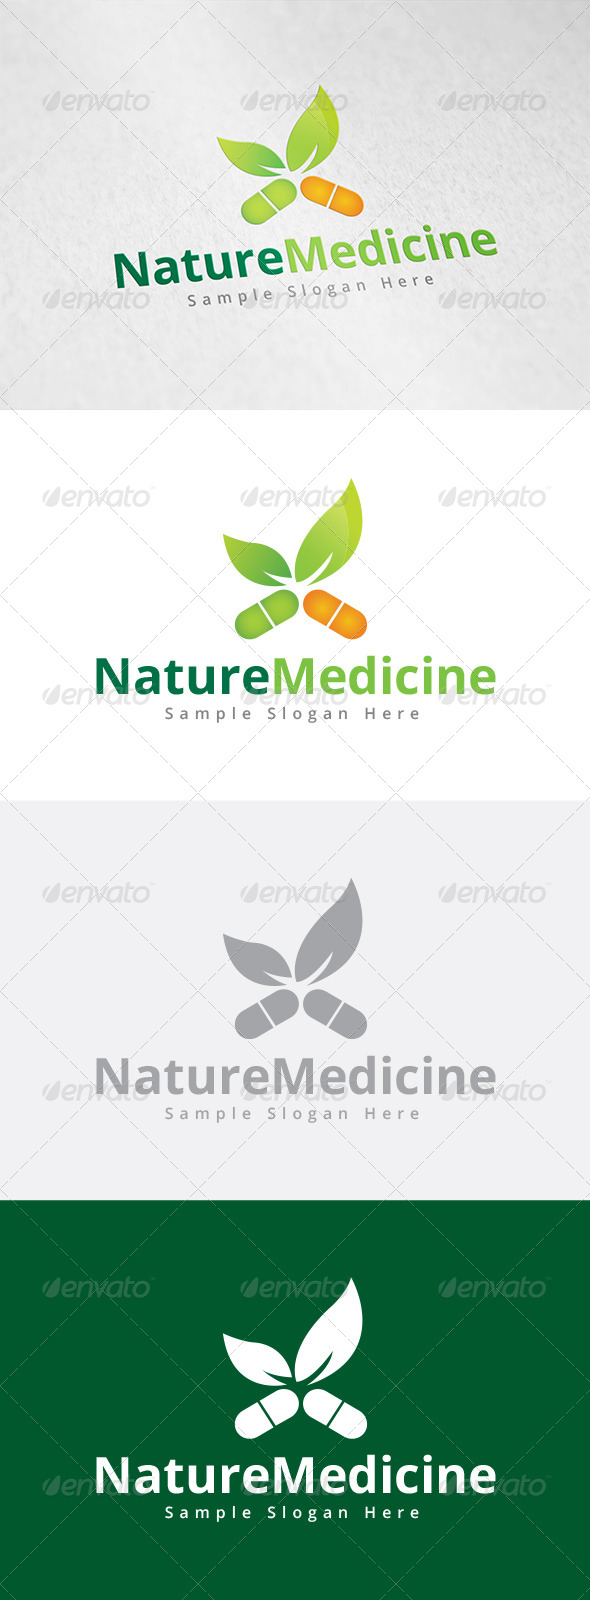 GraphicRiver Nature Medicine Logo 7956046